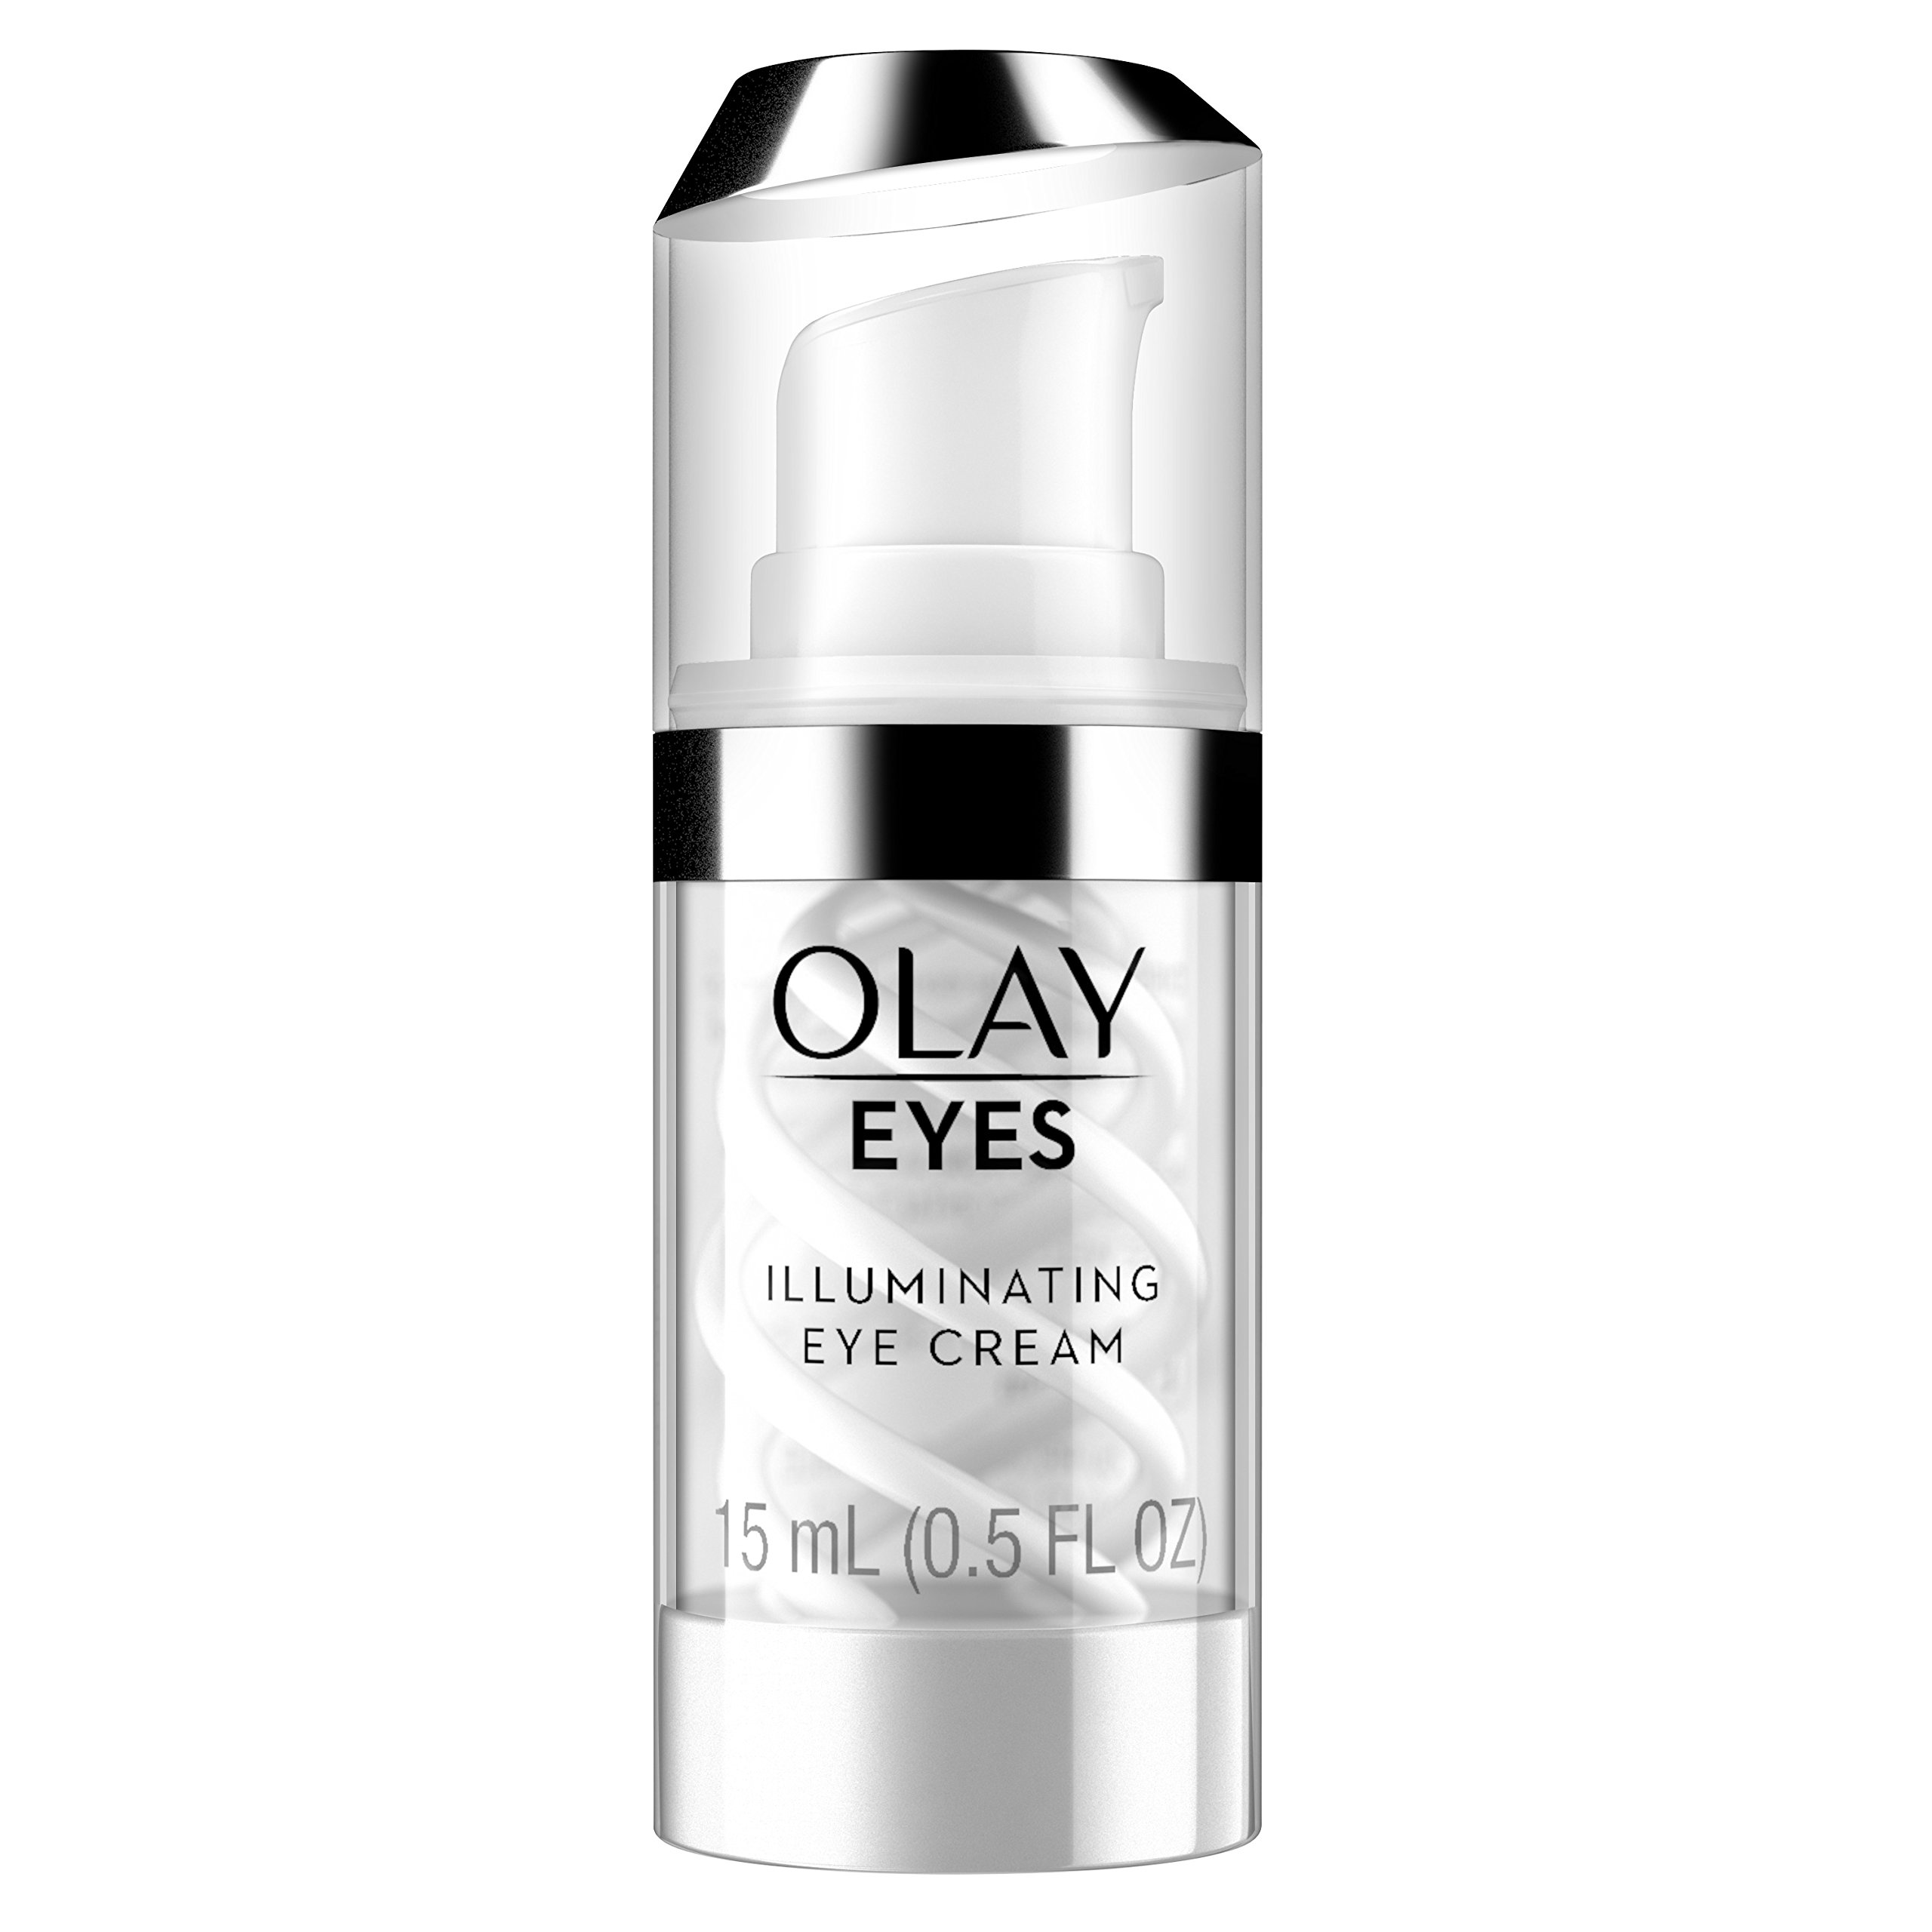 Eye Cream by Olay Eyes Illuminating to Help Reduce the look of Dark Circles Under Eyes, 0.5 Fl Oz Packaging may Vary by Olay